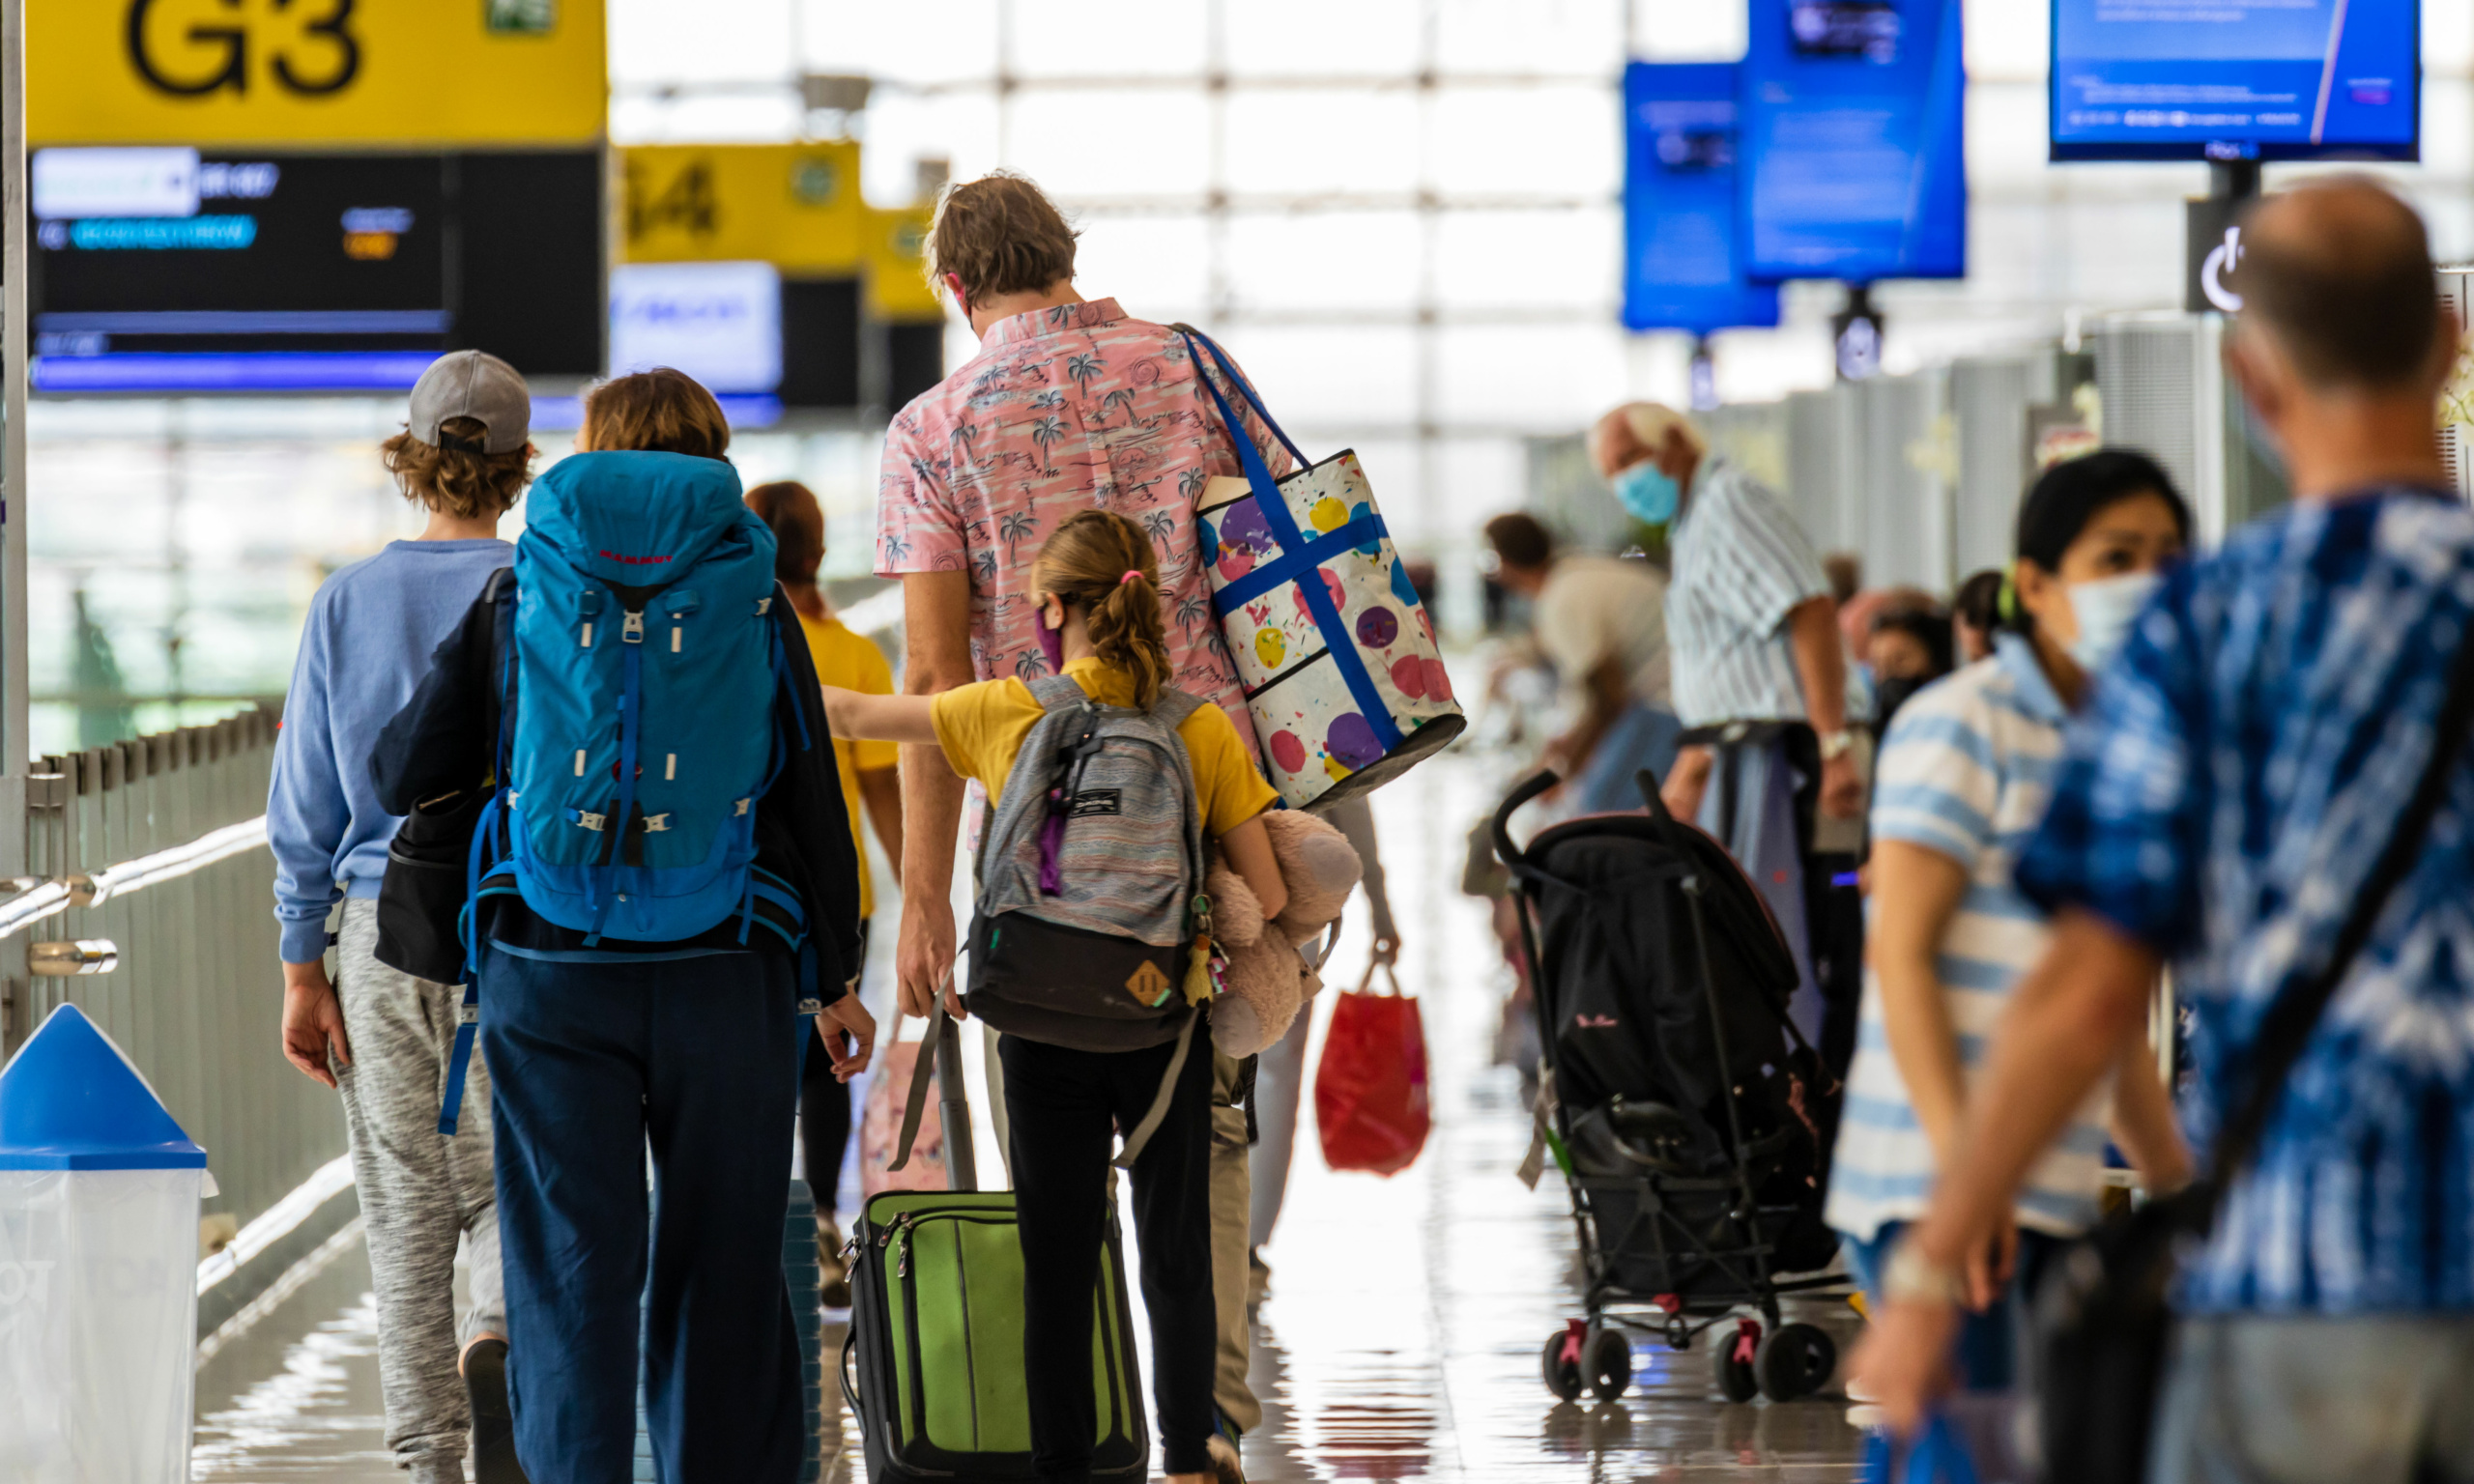 Passengers endure tightly packed security queue at Stansted Airport